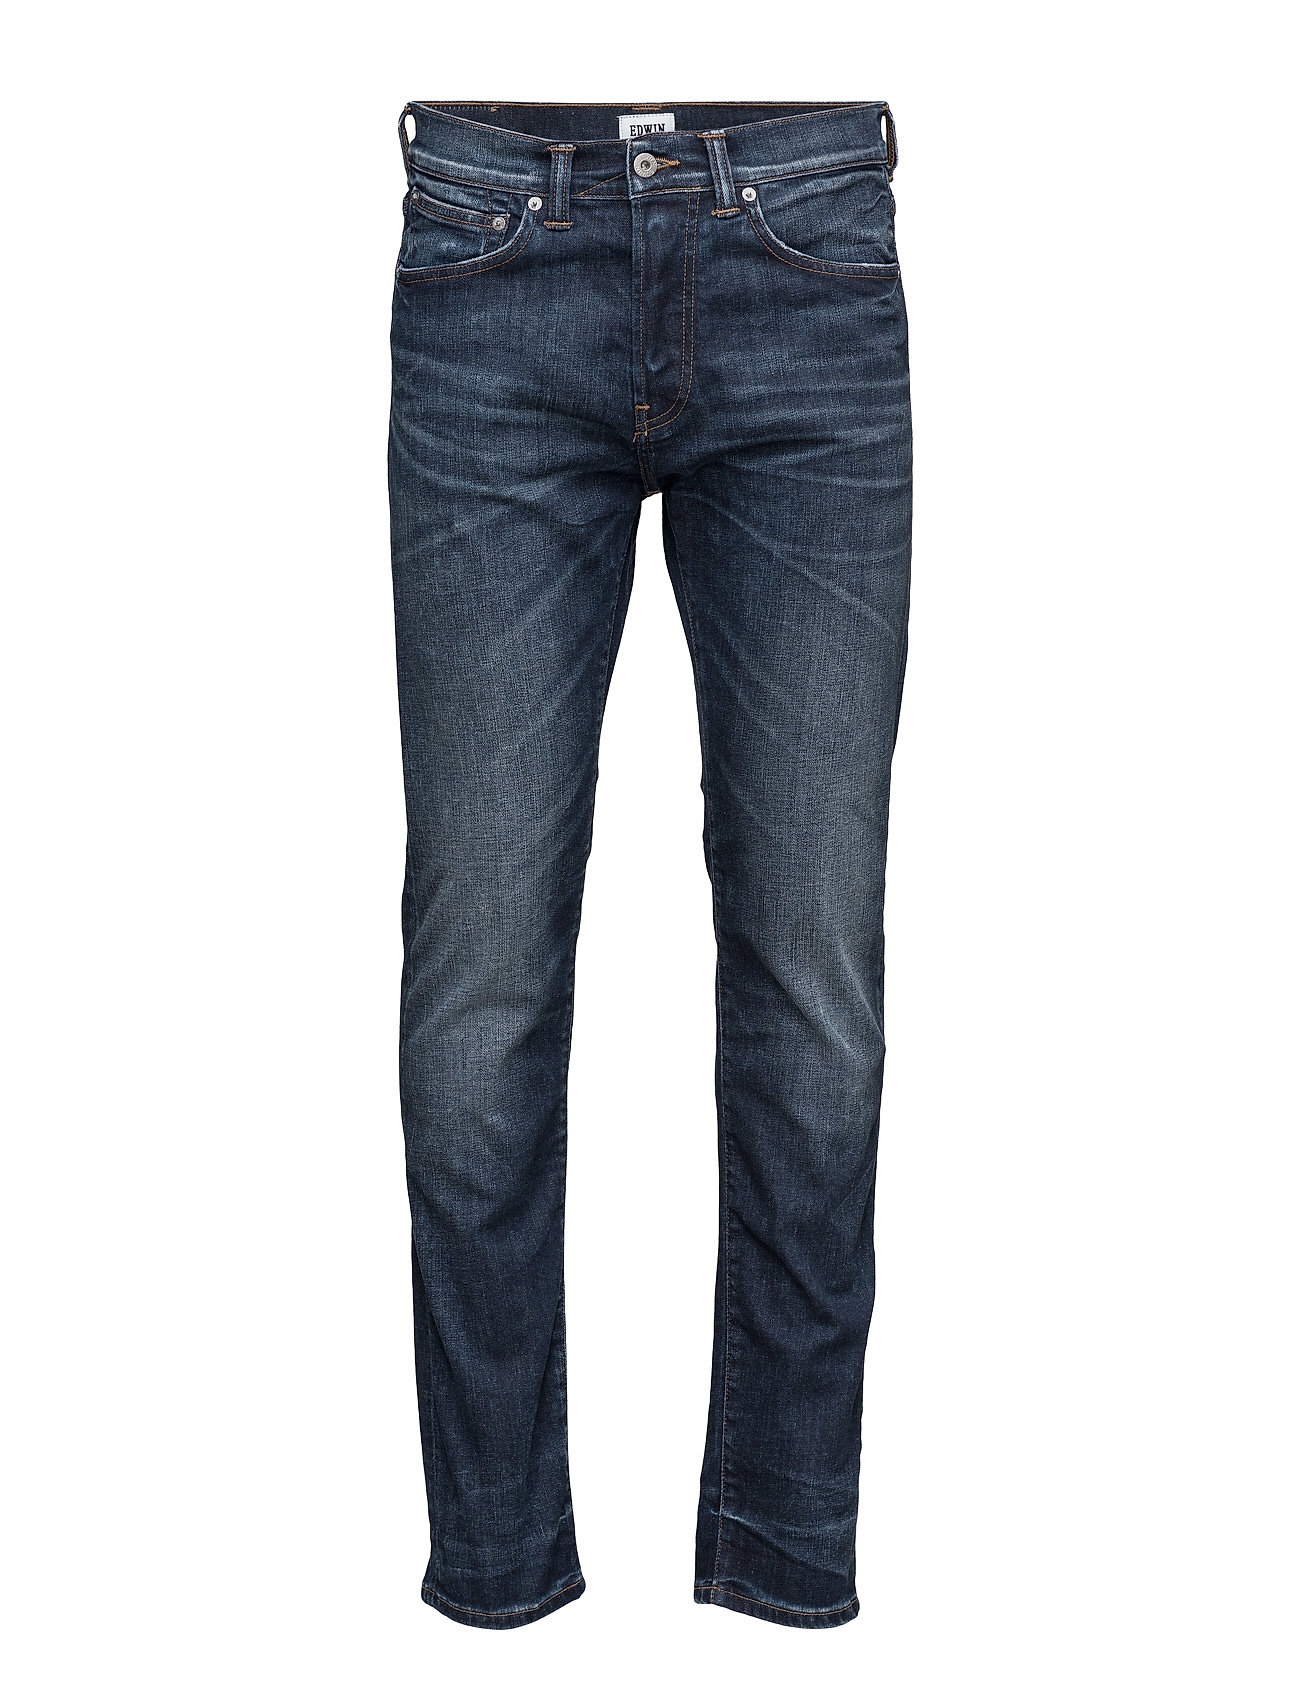 Ed-80 Slim Tapered Jeans thumbnail